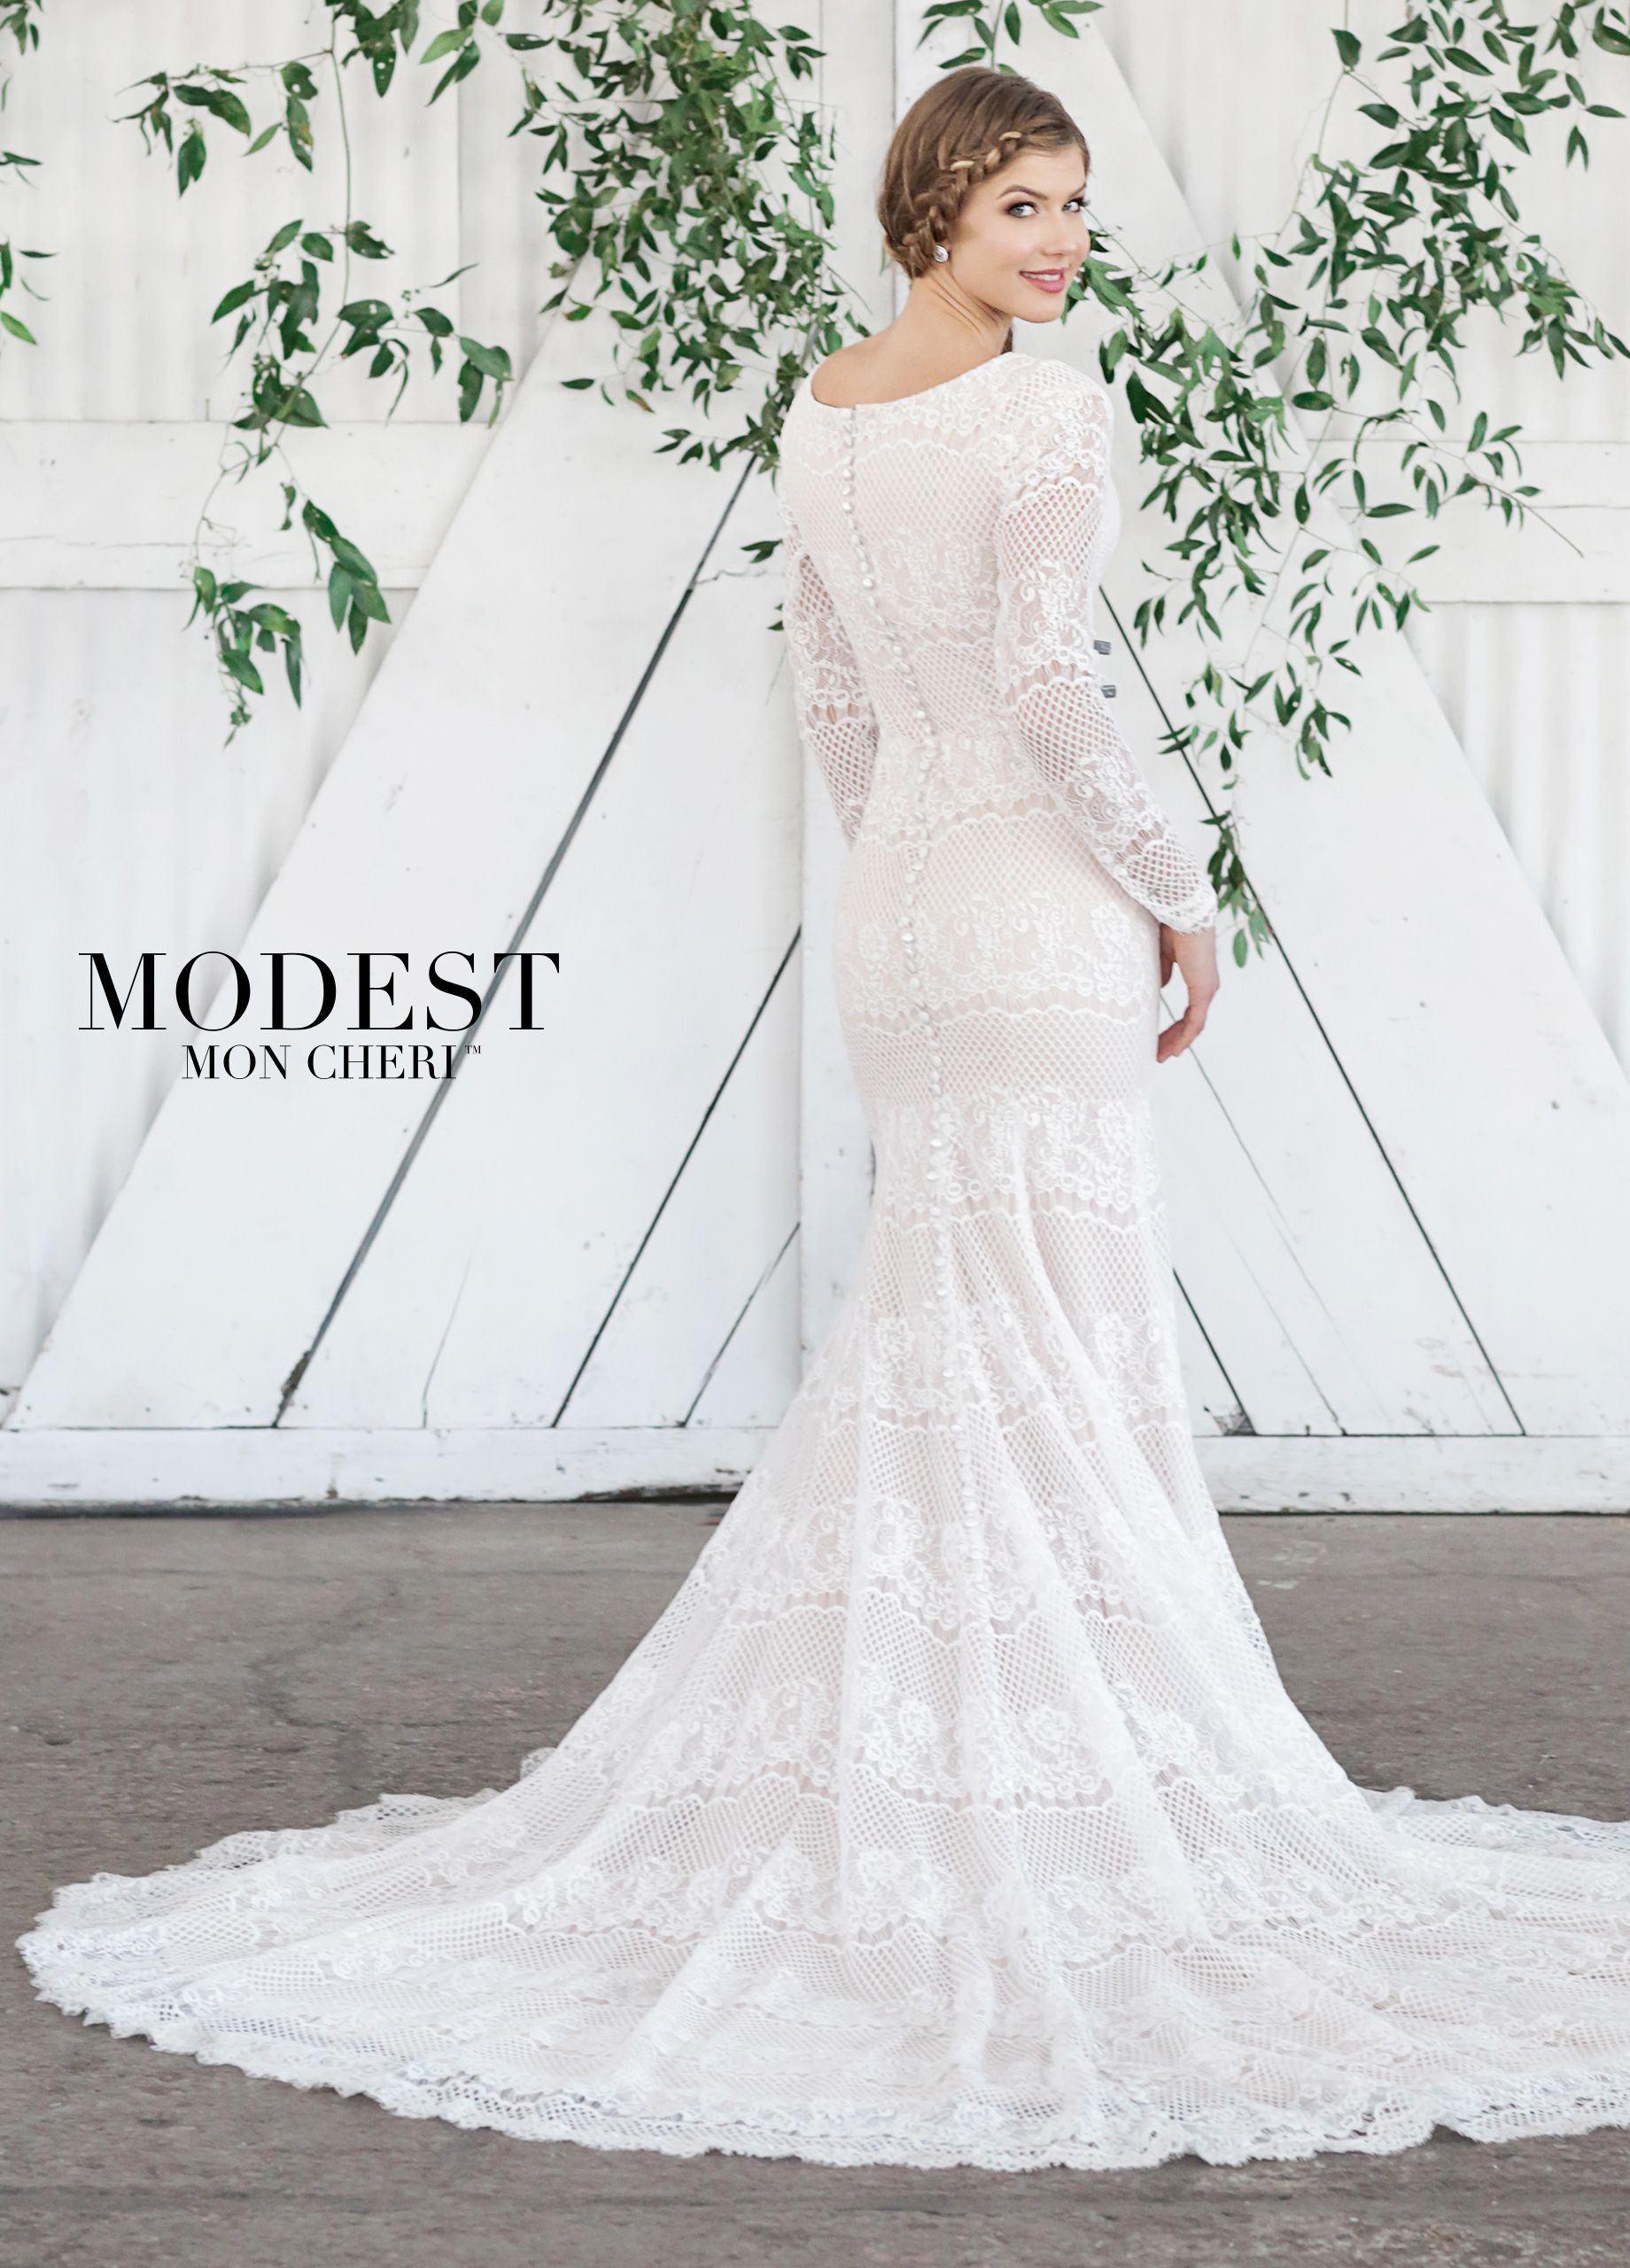 Modest all lace fit u flare wedding gown with lace illusion long